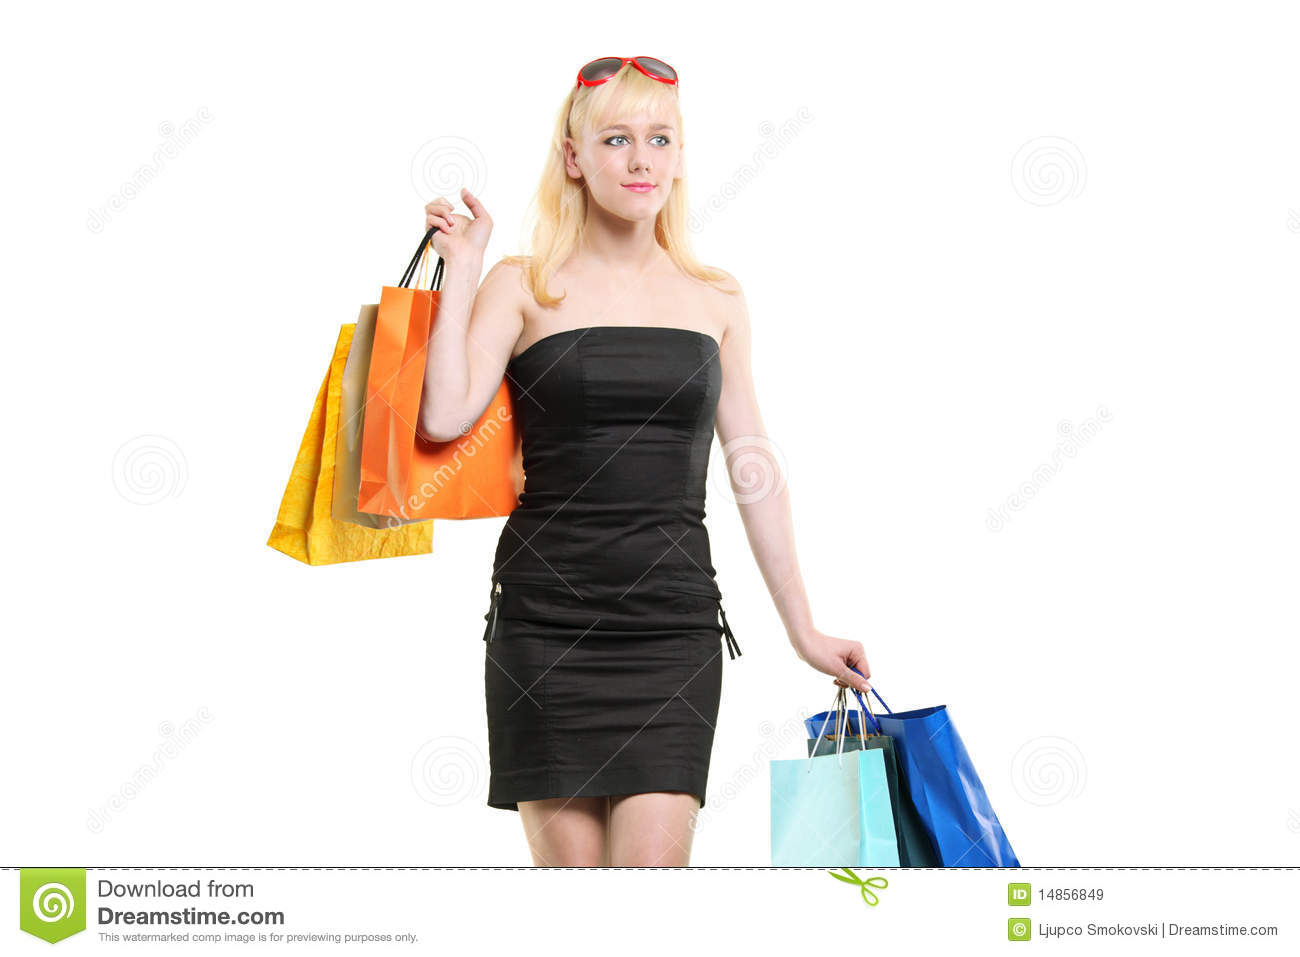 A smiling young female posing with shopping bags